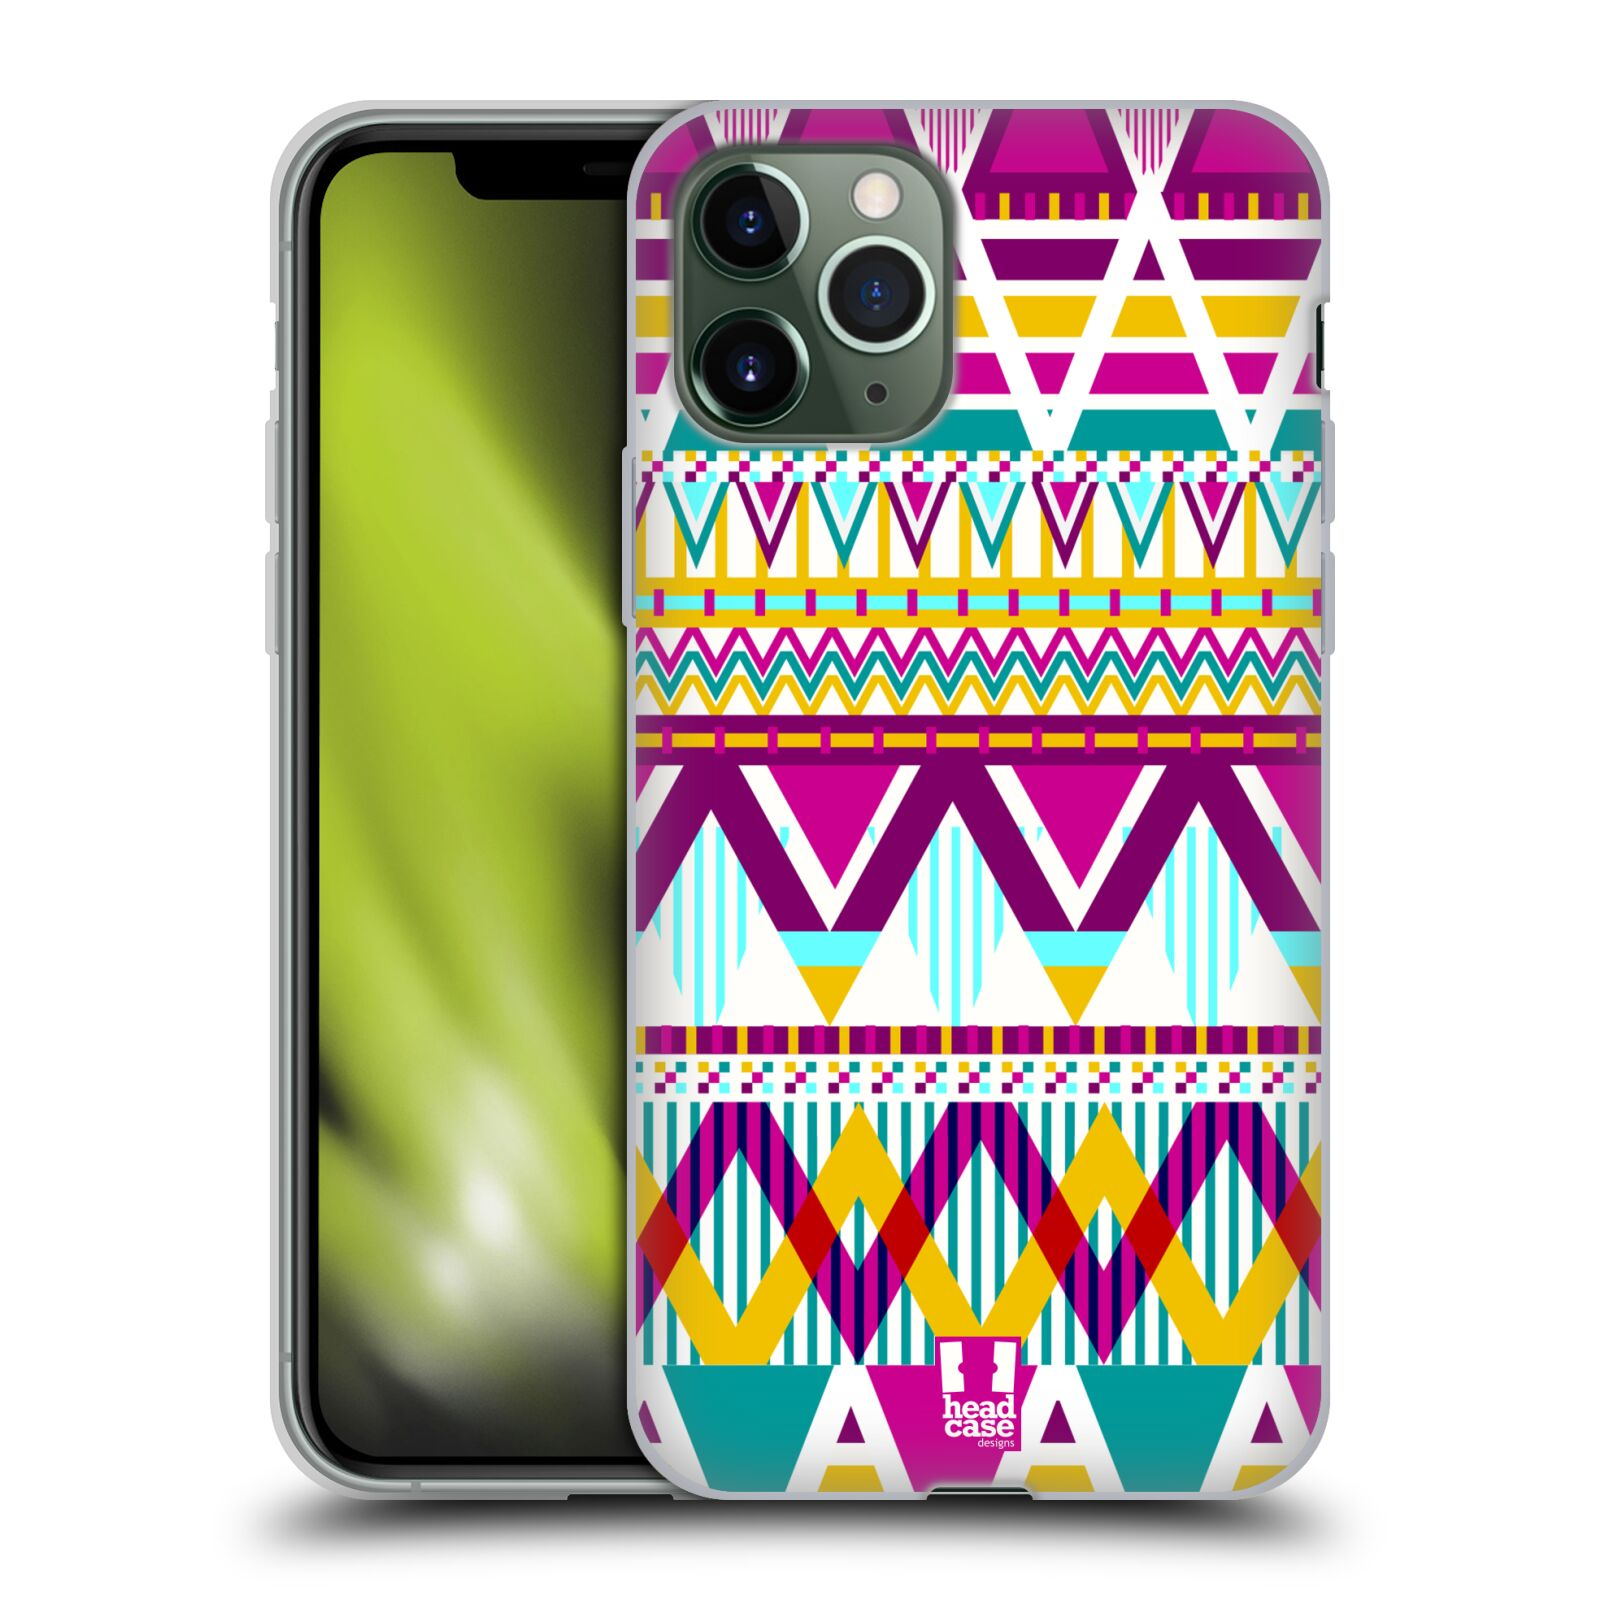 karl krytu na iphone xs max , Silikonové pouzdro na mobil Apple iPhone 11 Pro - Head Case - AZTEC SUGARED